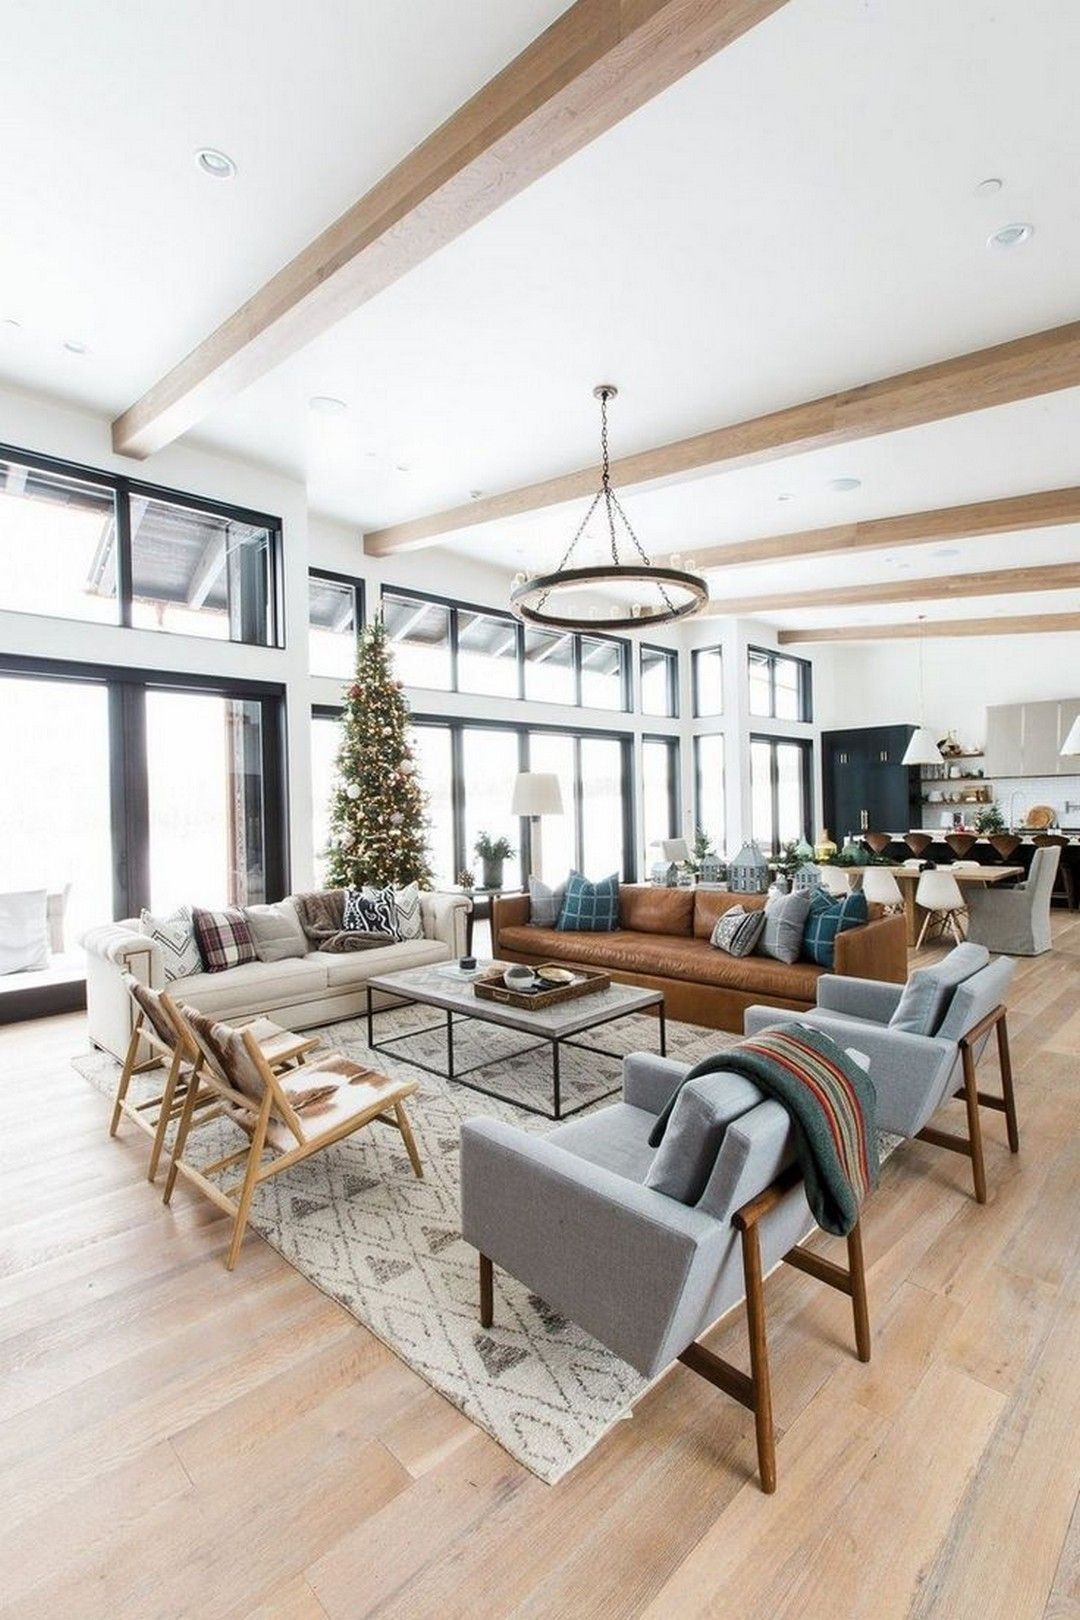 20 Cute Living Room Design Ideas For You To Create In 2020